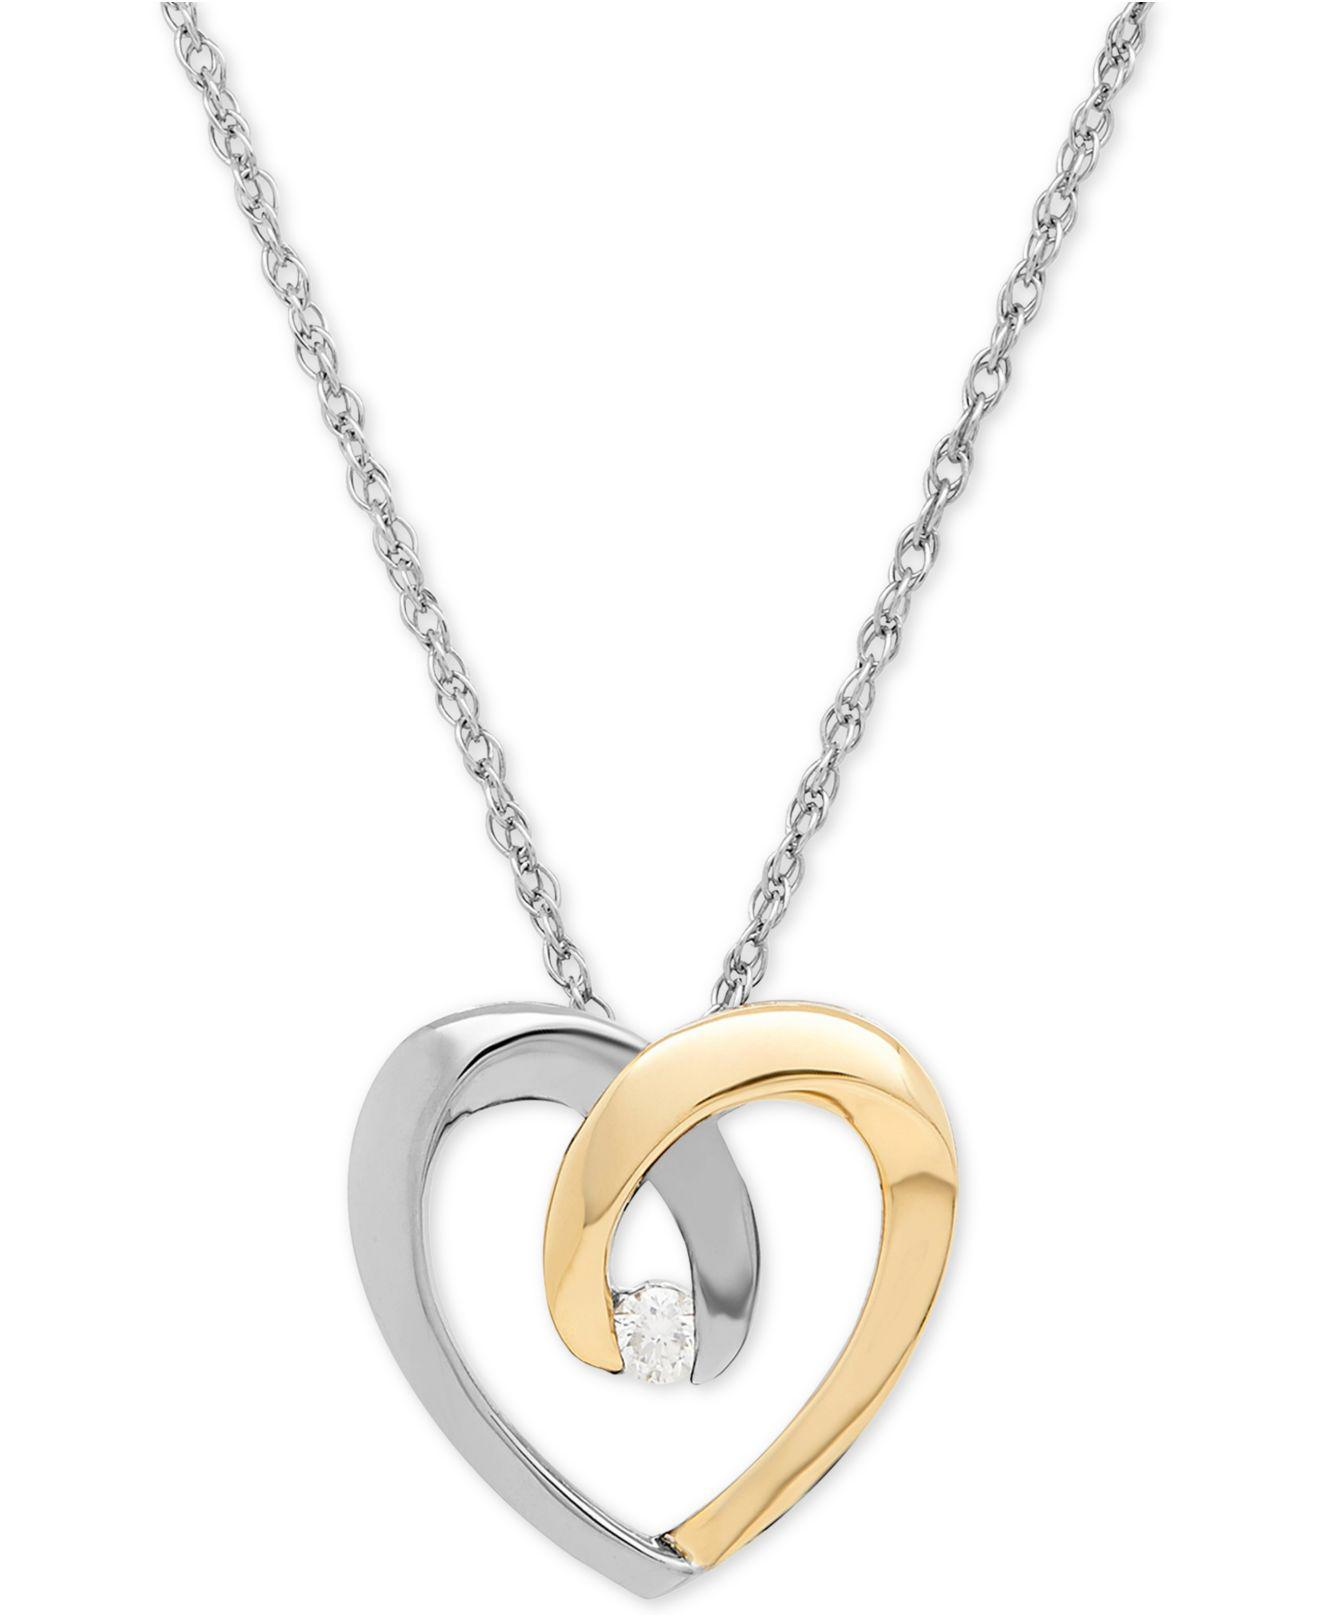 Lyst macys diamond accent heart pendant necklace in sterling macys womens metallic diamond accent heart pendant aloadofball Image collections